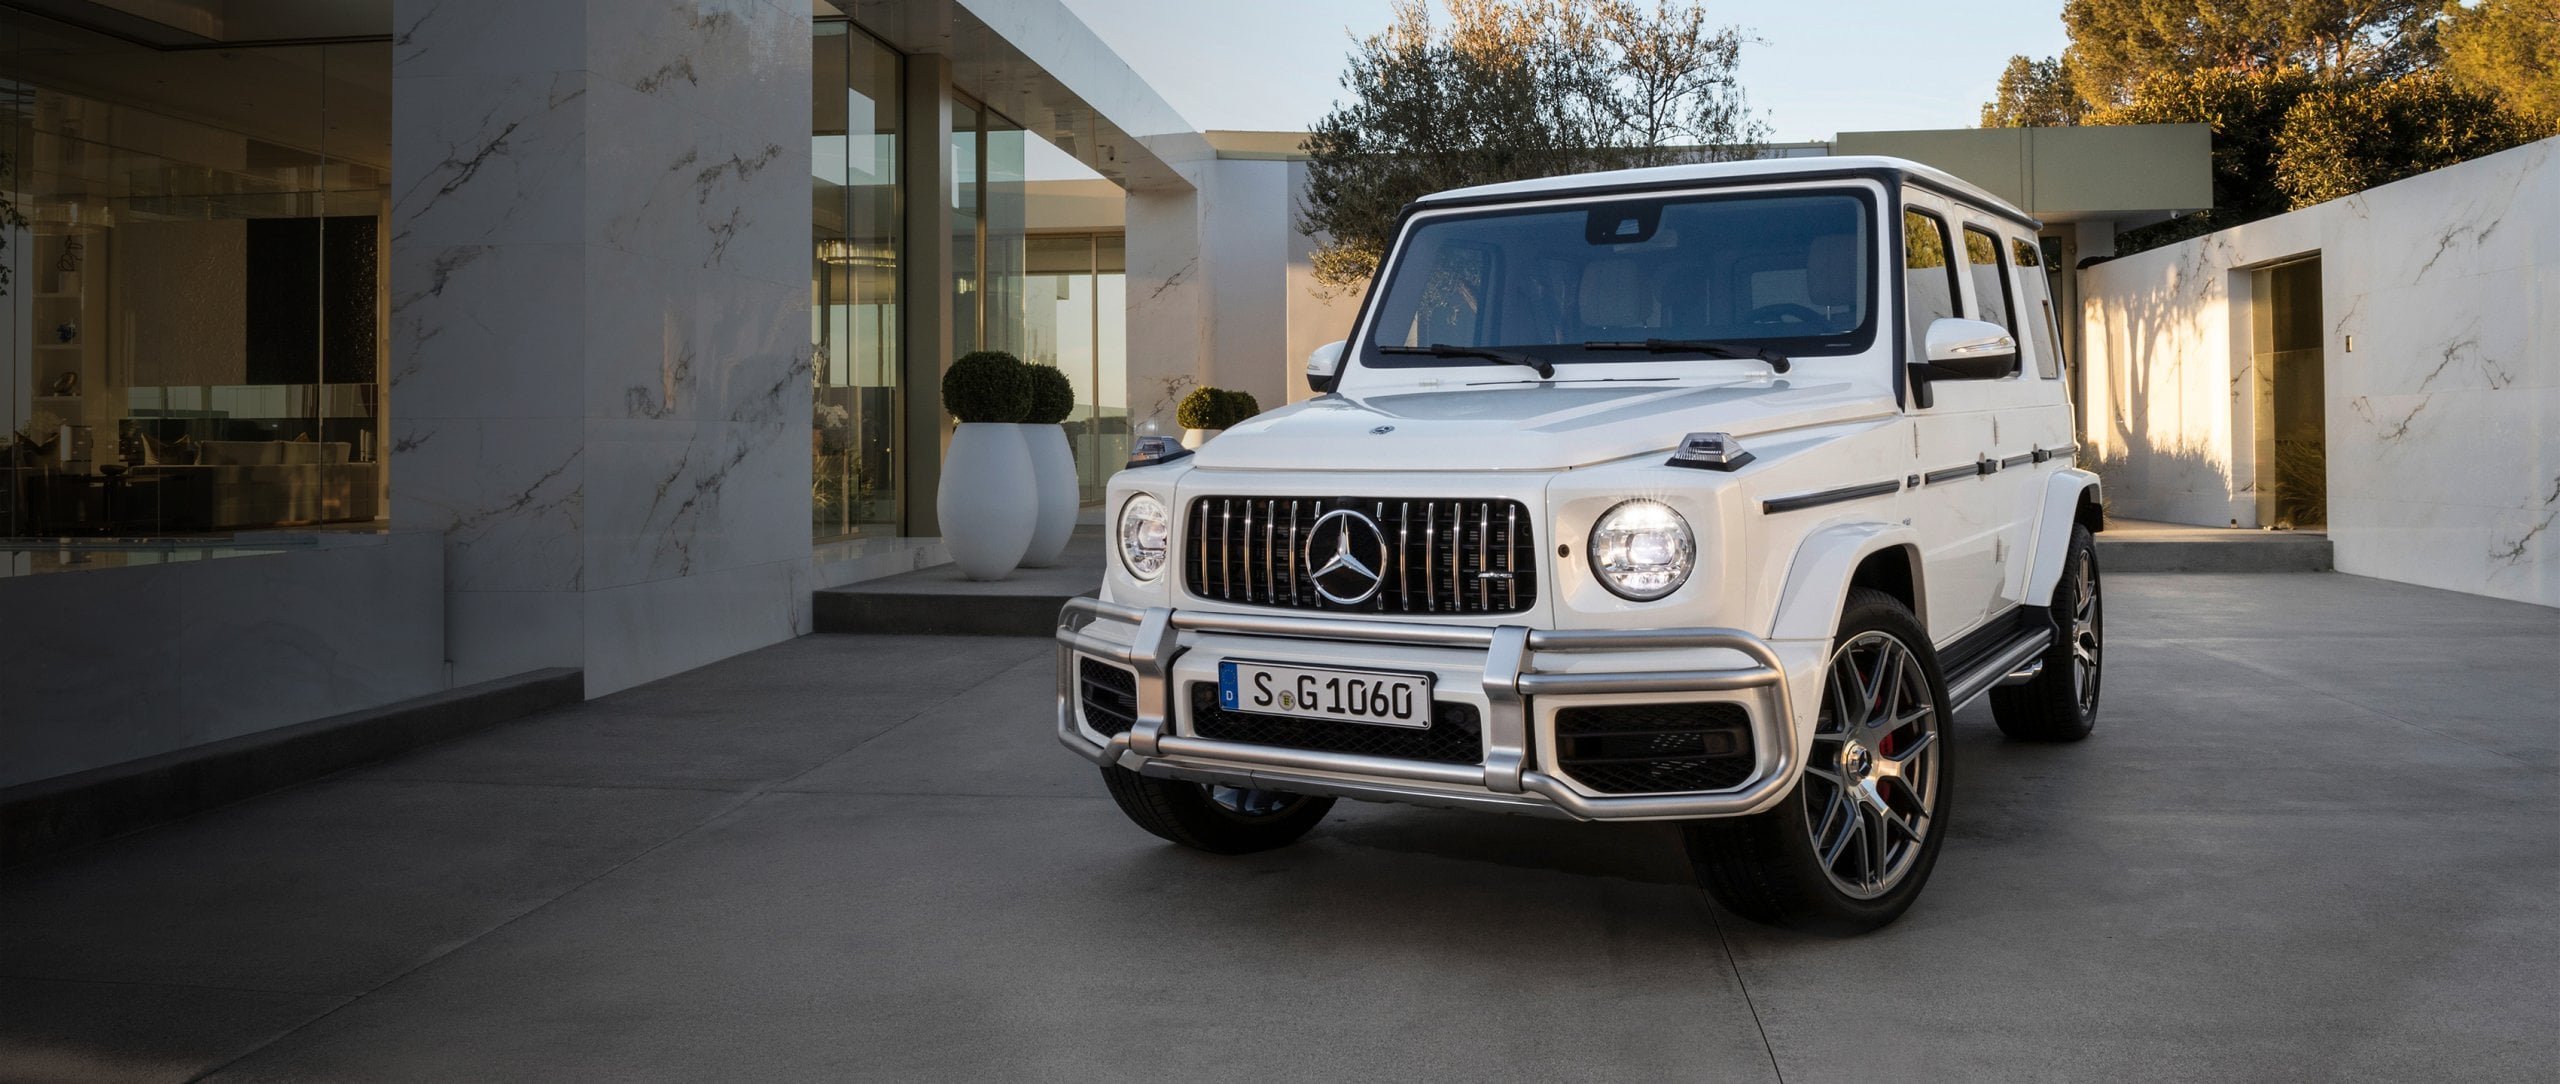 The Mercedes-Benz G-Class is standing in the courtyard of a villa.